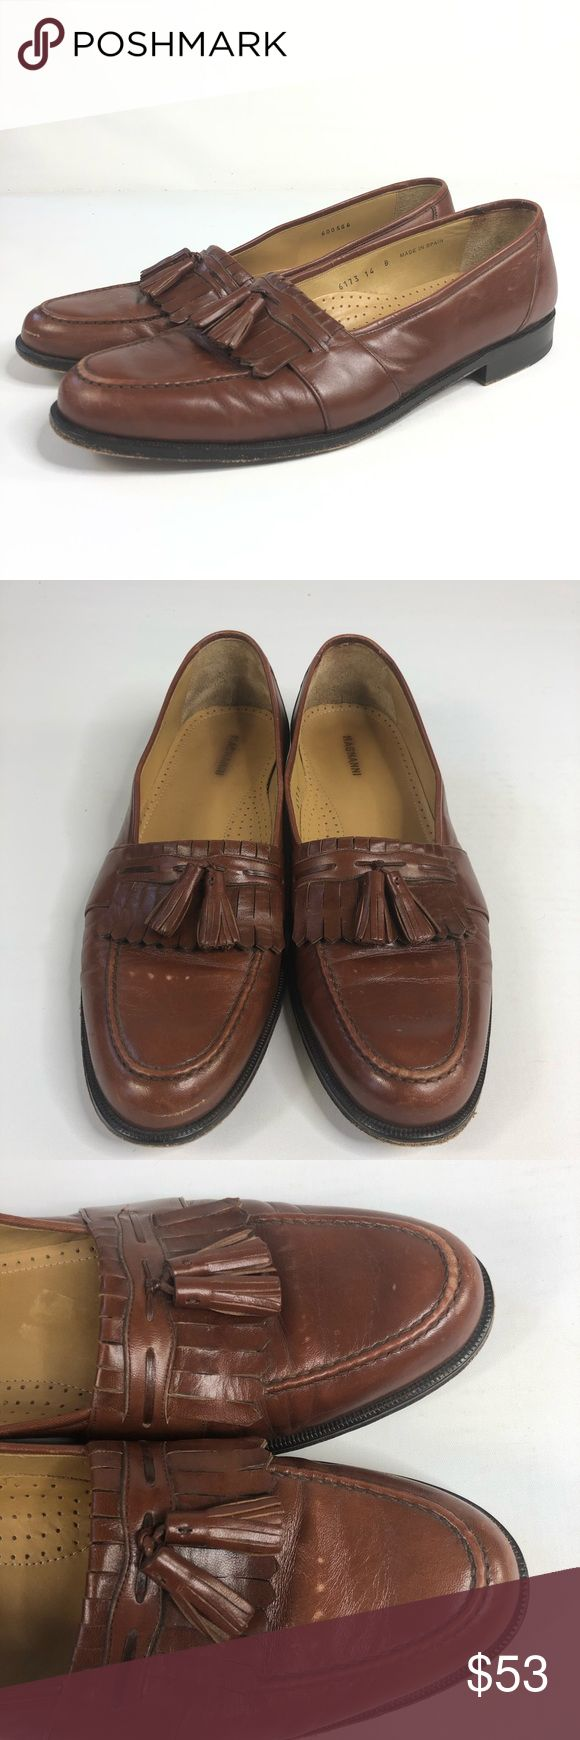 Magnanni Mens tassel loafers size 14B Great condition message for more details M...